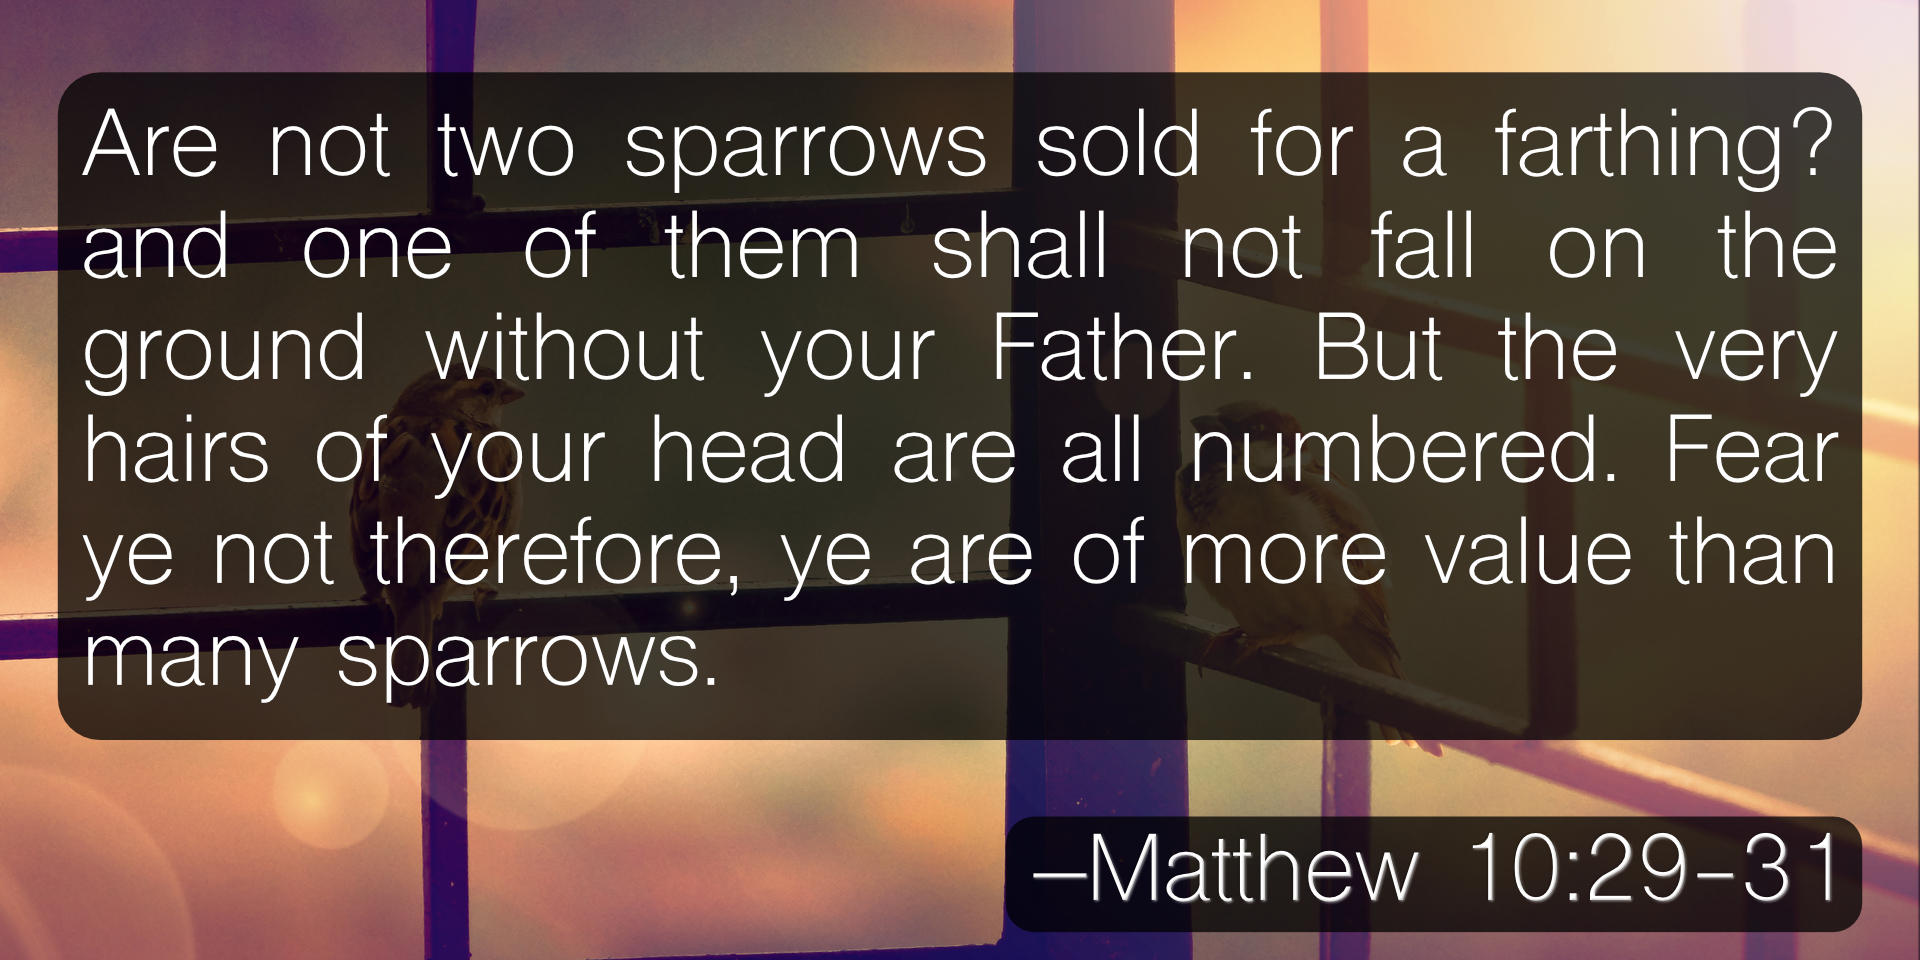 Are not two sparrows sold for a farthing? and one of them shall not fall on the ground without your Father. But the very hairs of your head are all numbered. Fear ye not therefore, ye are of more value than many sparrows. –Matthew 10:29-31